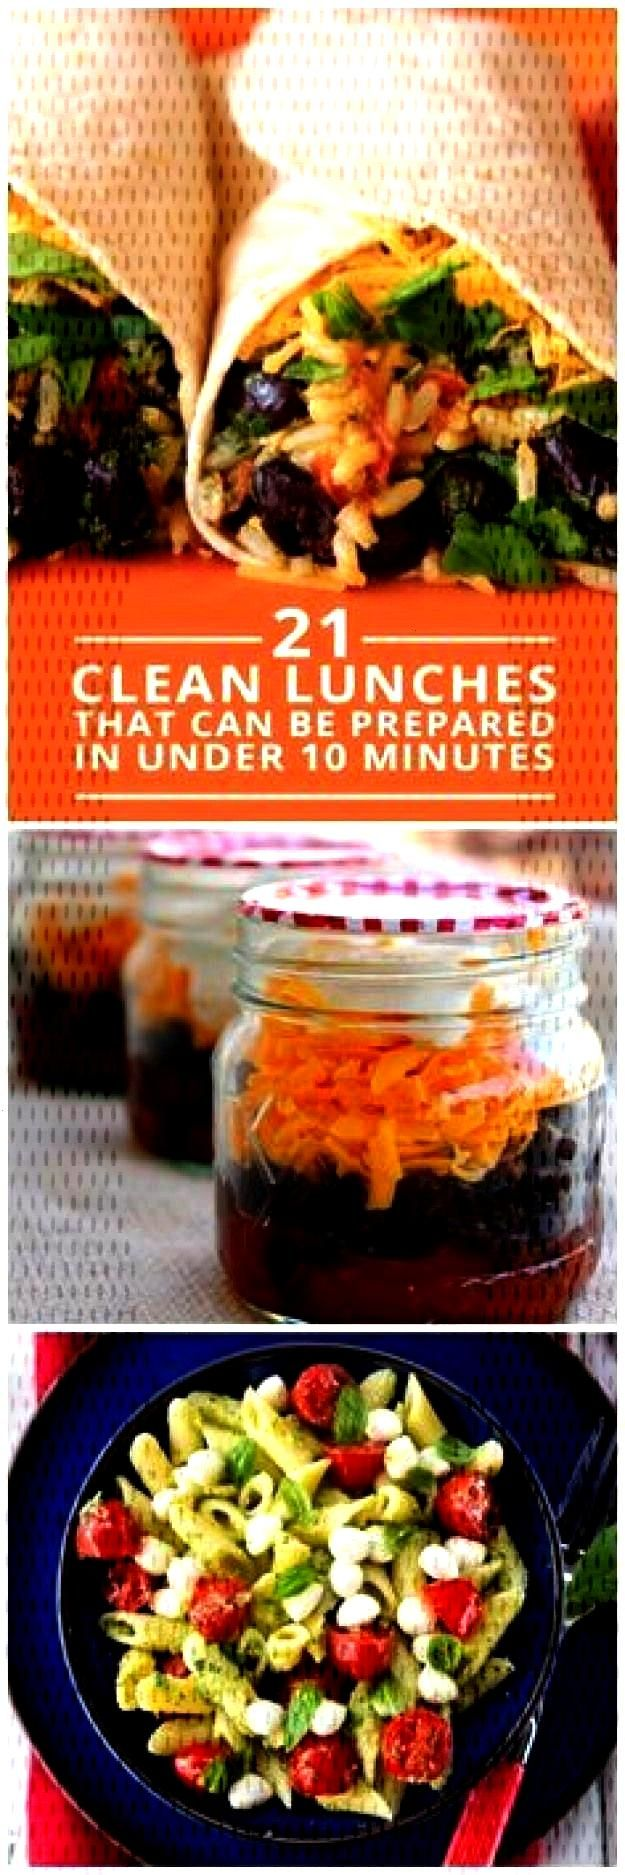 Clean Lunches Prepared in Under 10 Minutes - eat clean all day long!21 Clean Lunches Prepared in Un